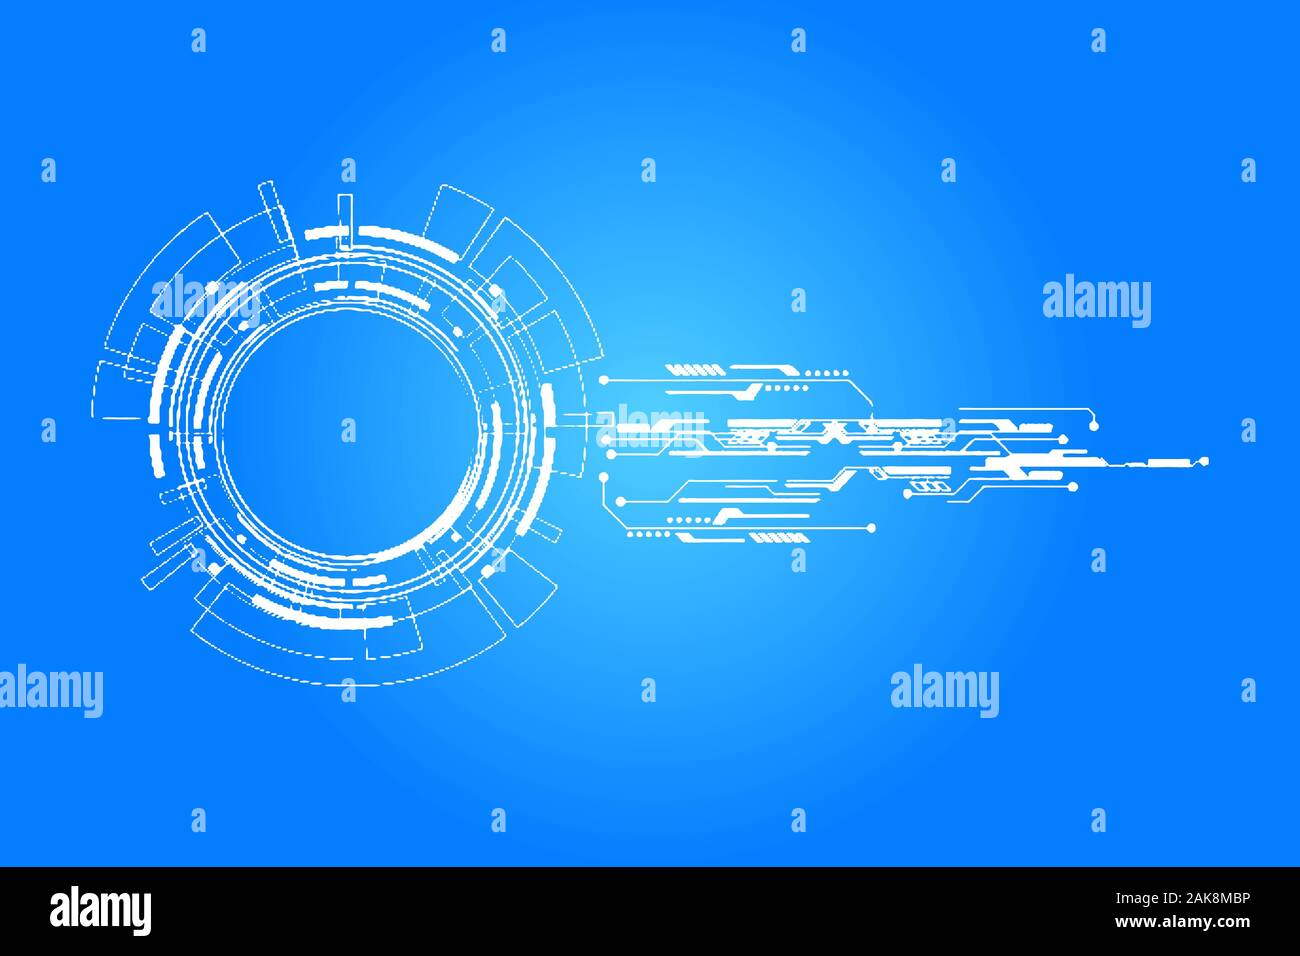 Abstract technology background with various technology elements Hi-tech communication concept innovation background Circle empty space for your text Stock Photo